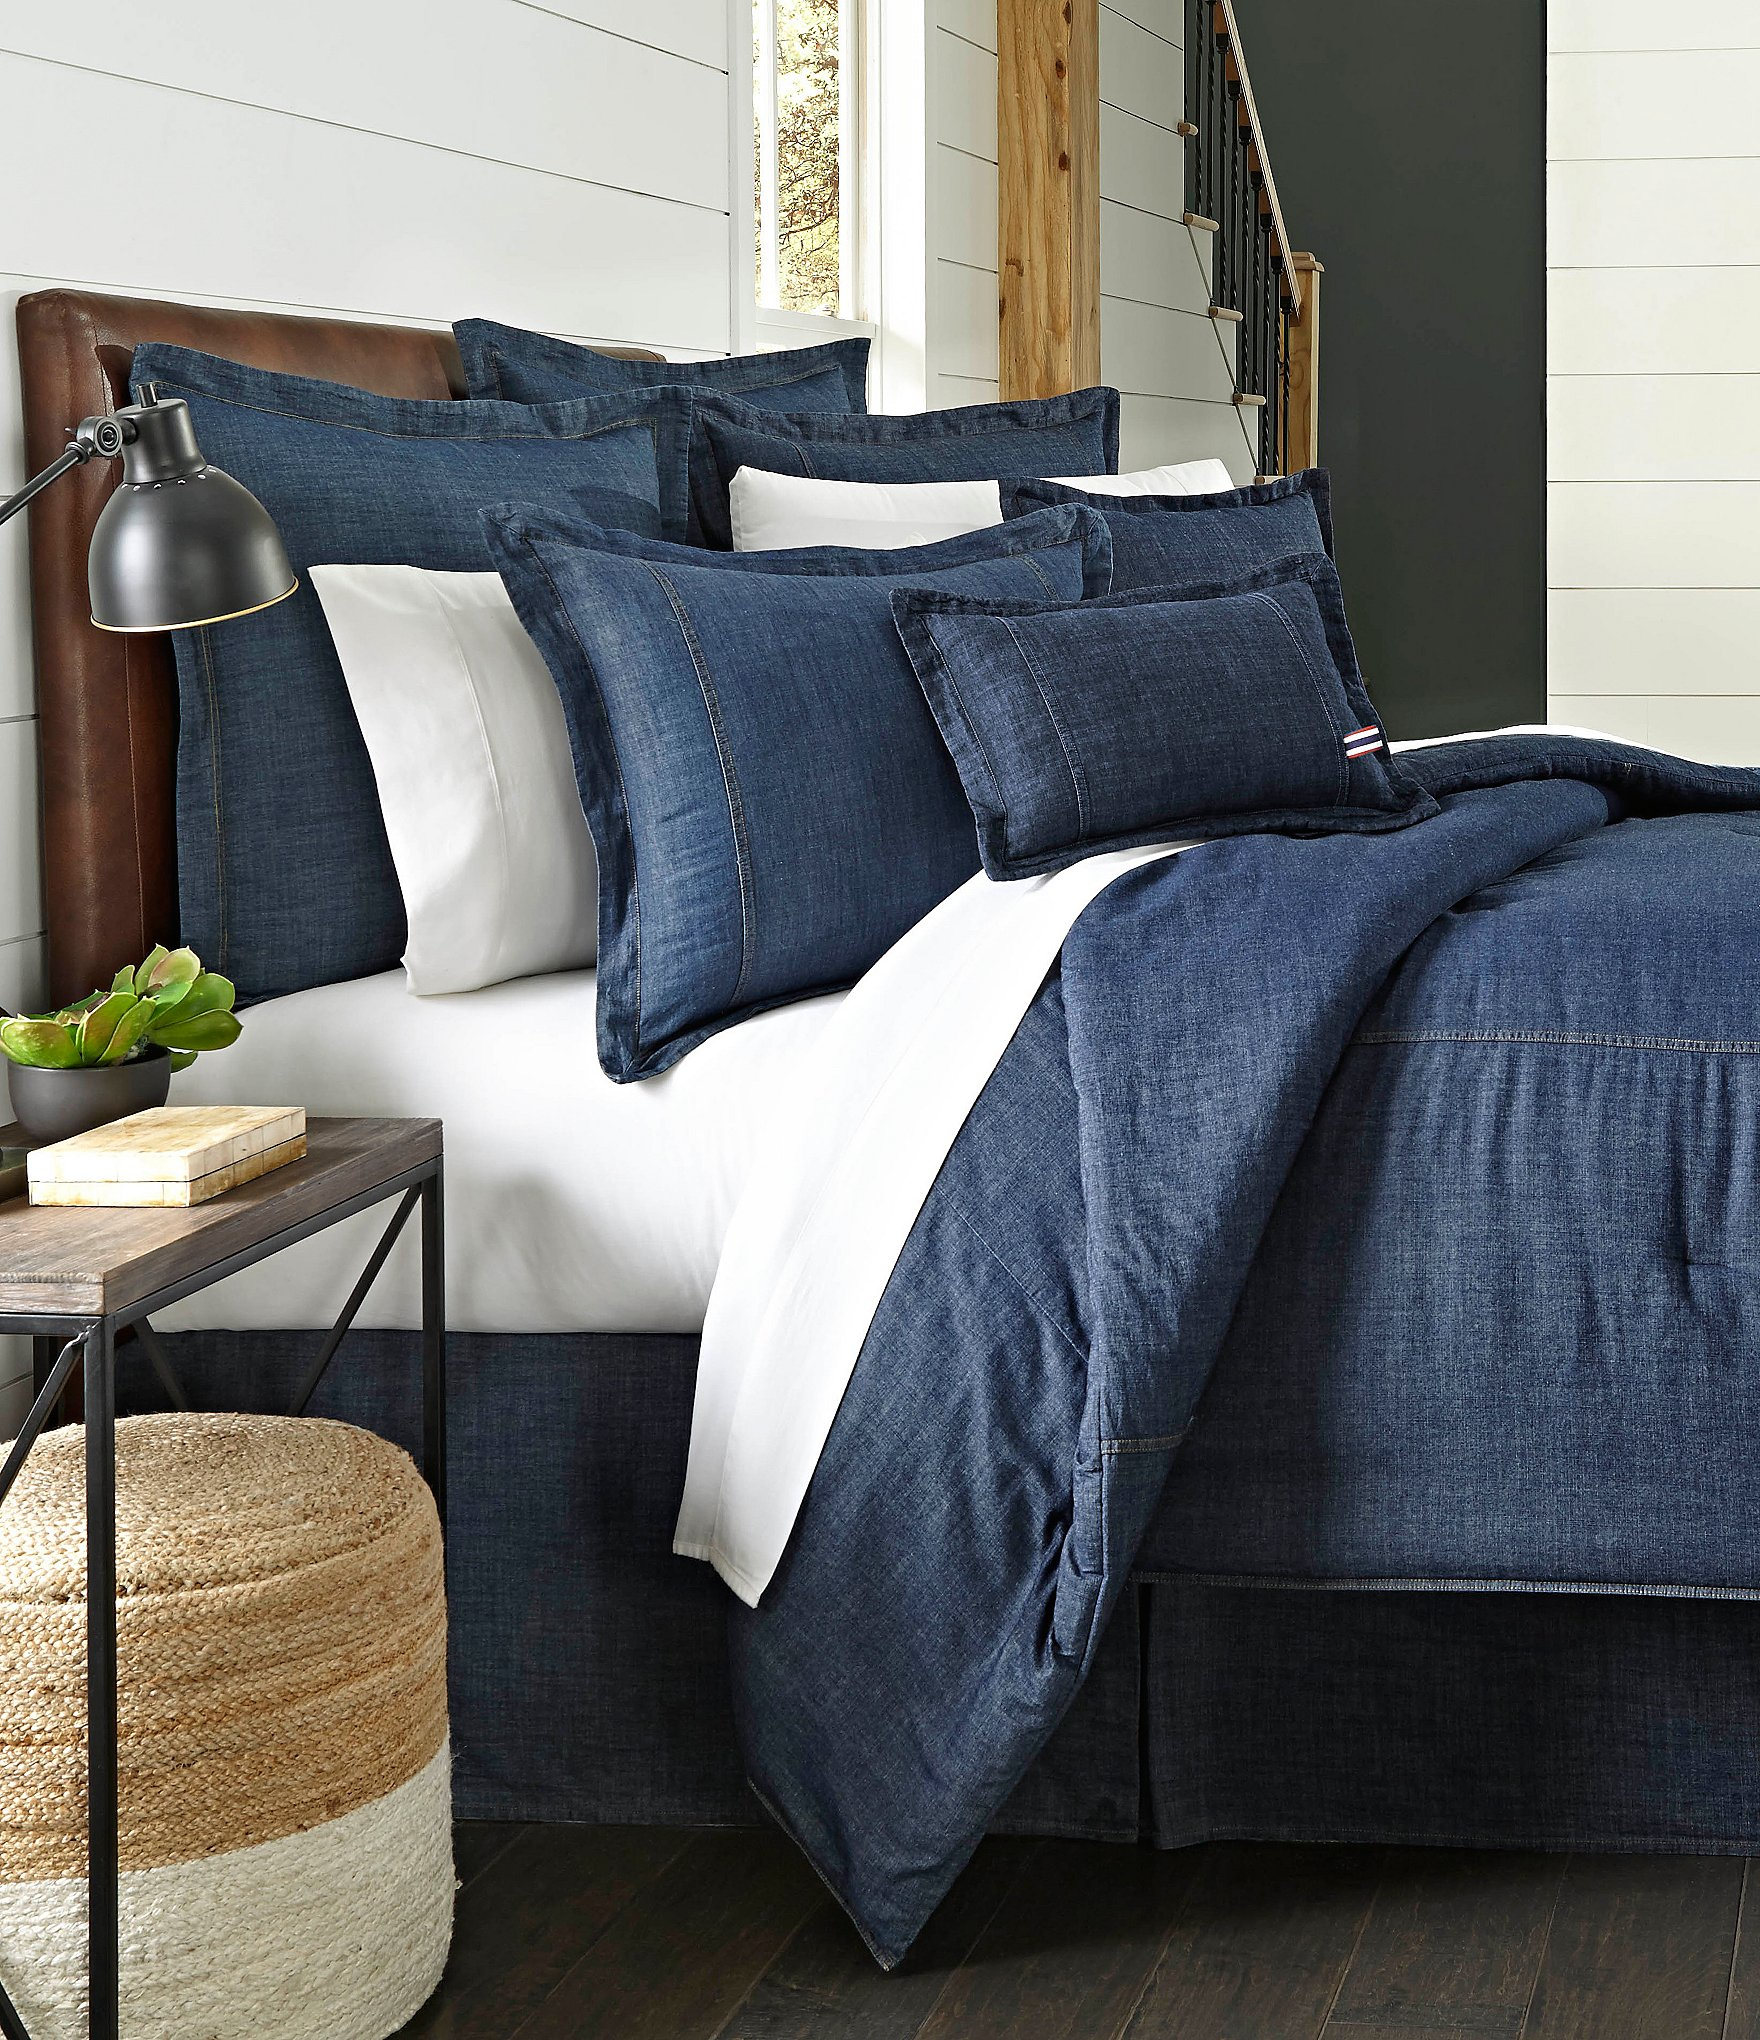 Cremieux Cotton Denim Comforter Dillards